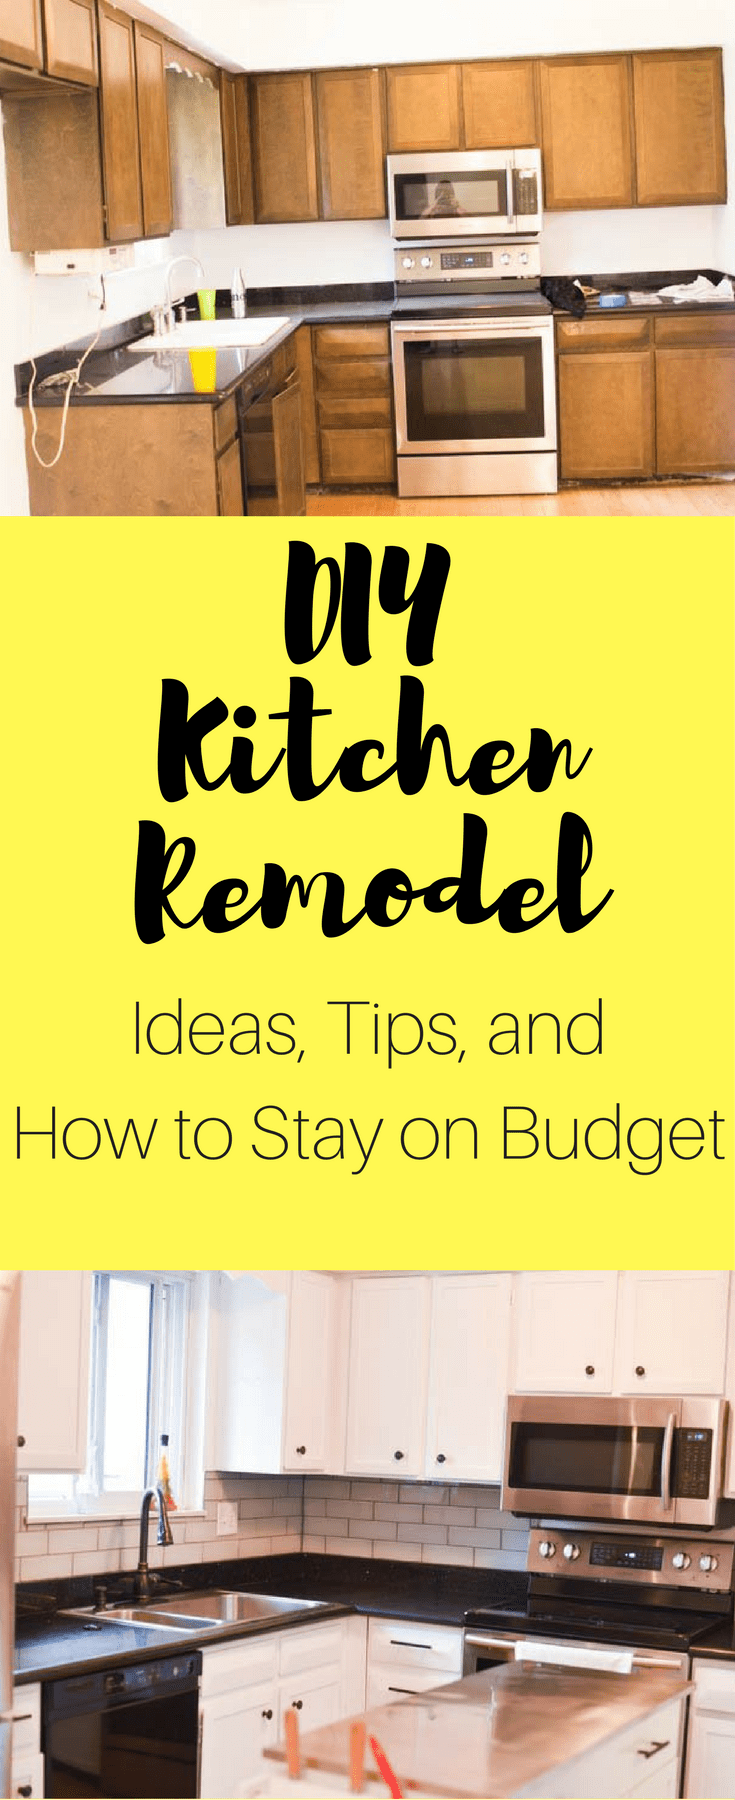 diy kitchen remodel ideas diy kitchen remodel DIY Kitchen Remodel Ideas DIY Kitchen Remodel Kitchen Remodel DIY Kitchen Renovation